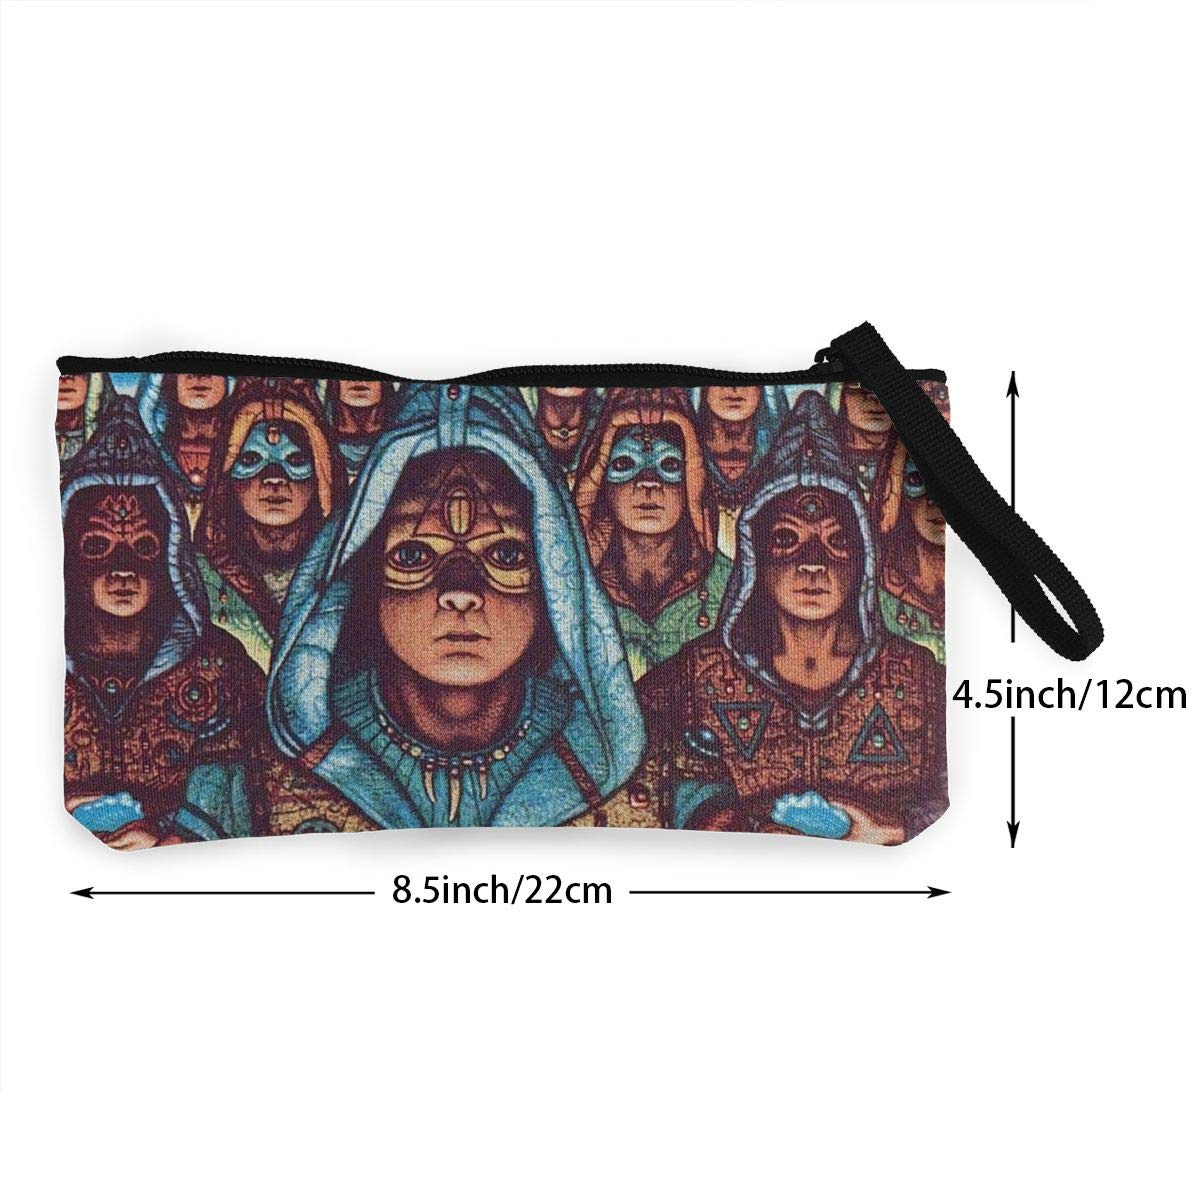 Thomas C Gaona Blue Oyster Cult Ladies Casual Coin Purse Zipper Pouch Wallet Canvas Clutch Wristlet Cellphone Bag with Handle for